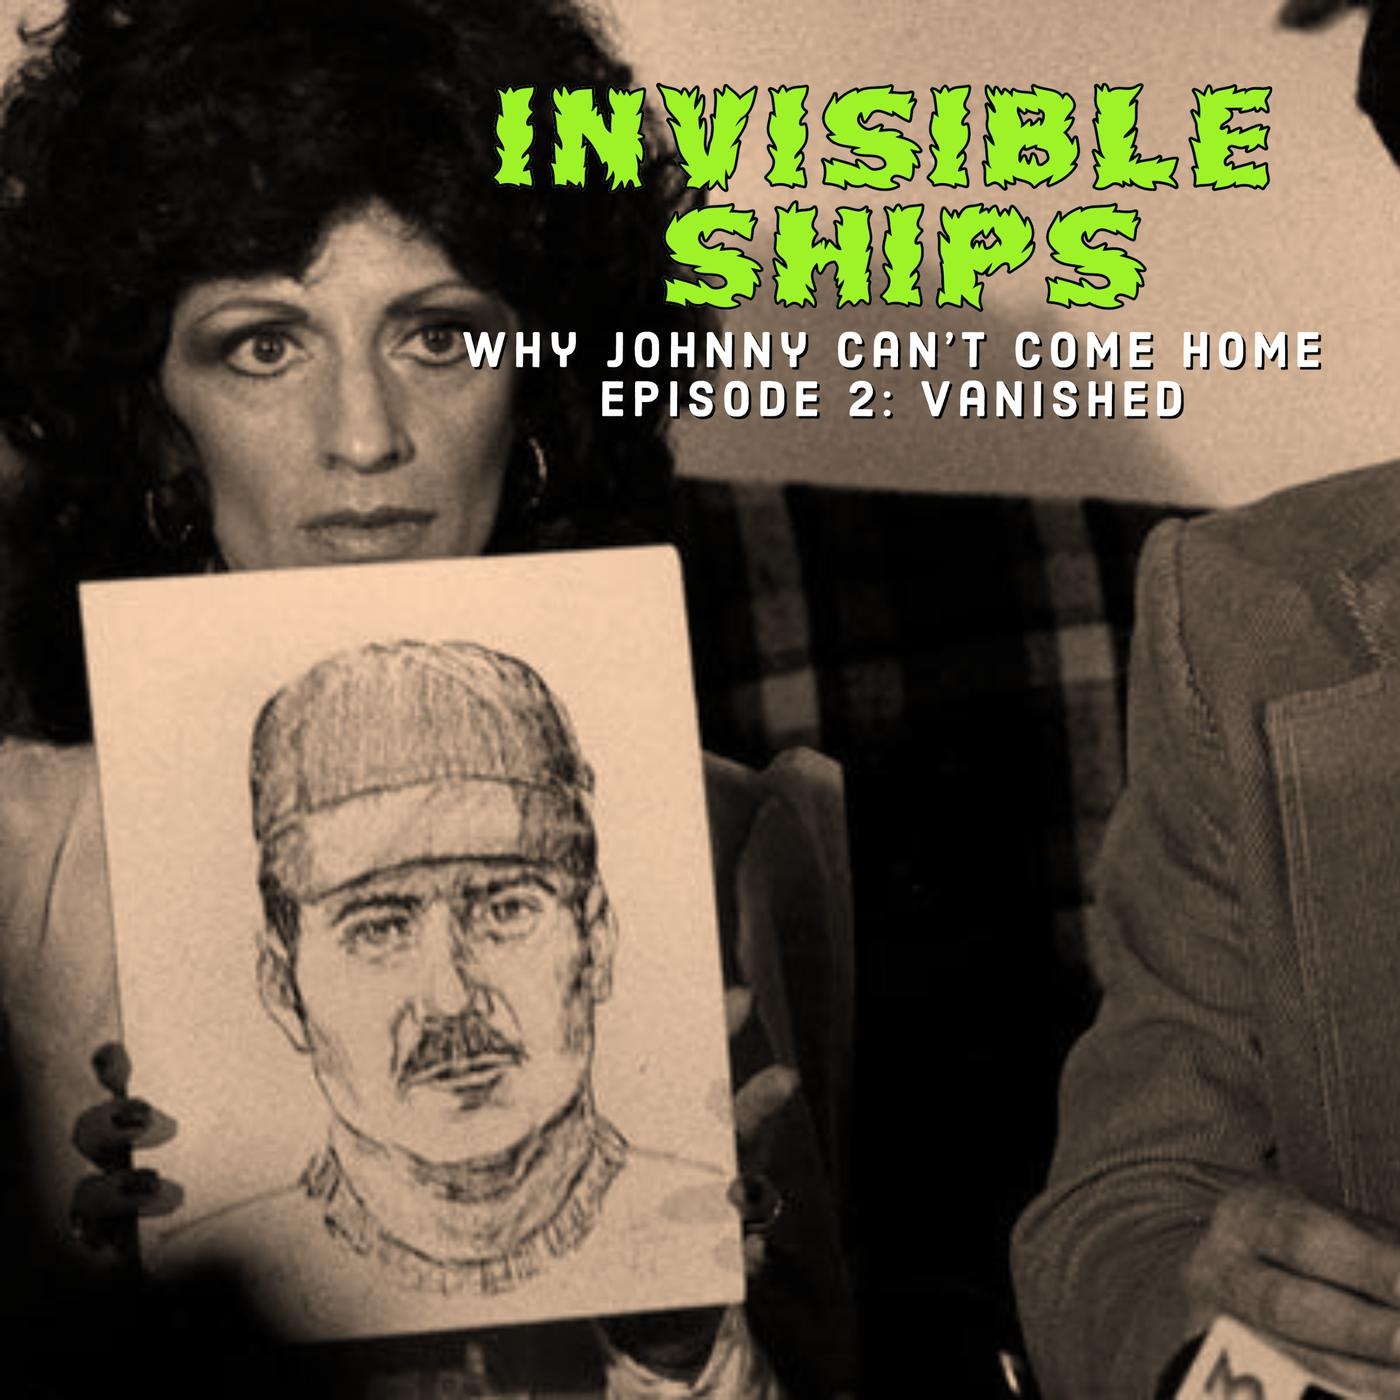 Why Johnny Can't Come Home: Episode 2 Vanished